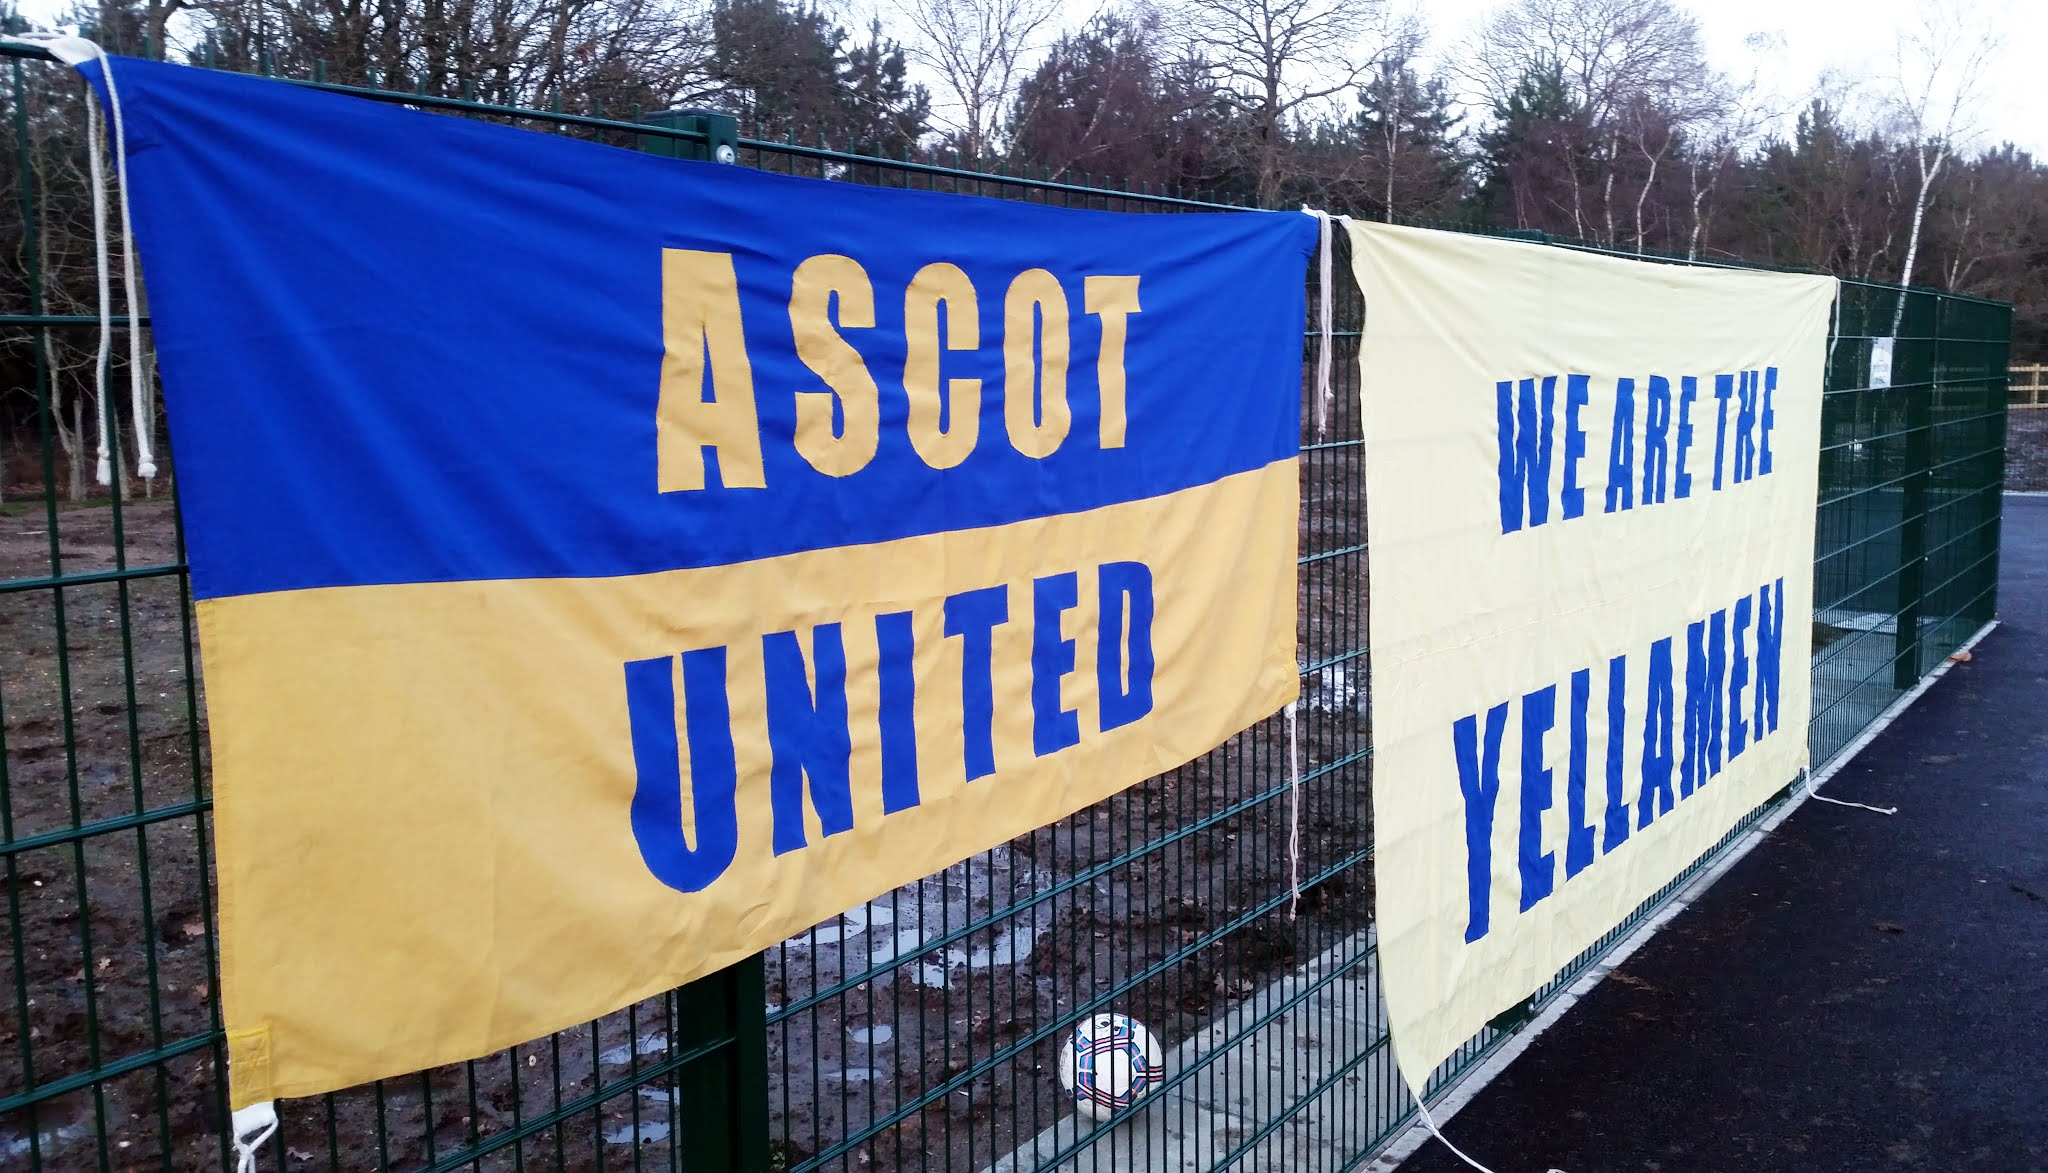 Ascot United banners at the Racecourse Ground